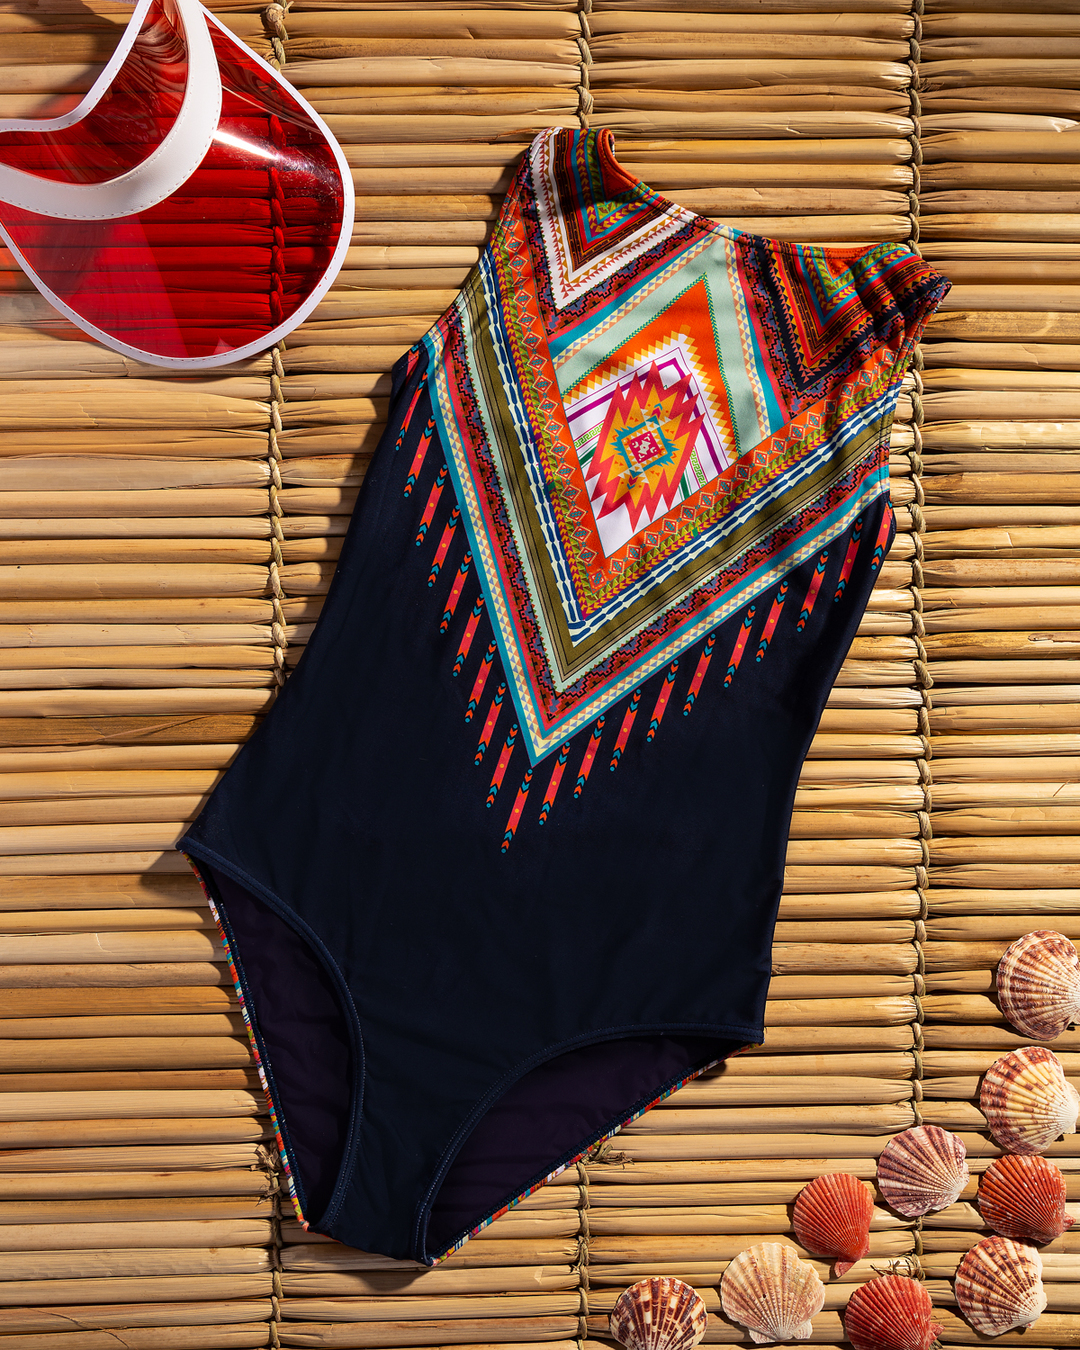 H4a7833ab653b41cf8e589cde5be10532g - Striped Women One Piece Swimsuit High Quality Swimwear Printed Push Up Monokini Summer Bathing Suit Tropical Bodysuit Female